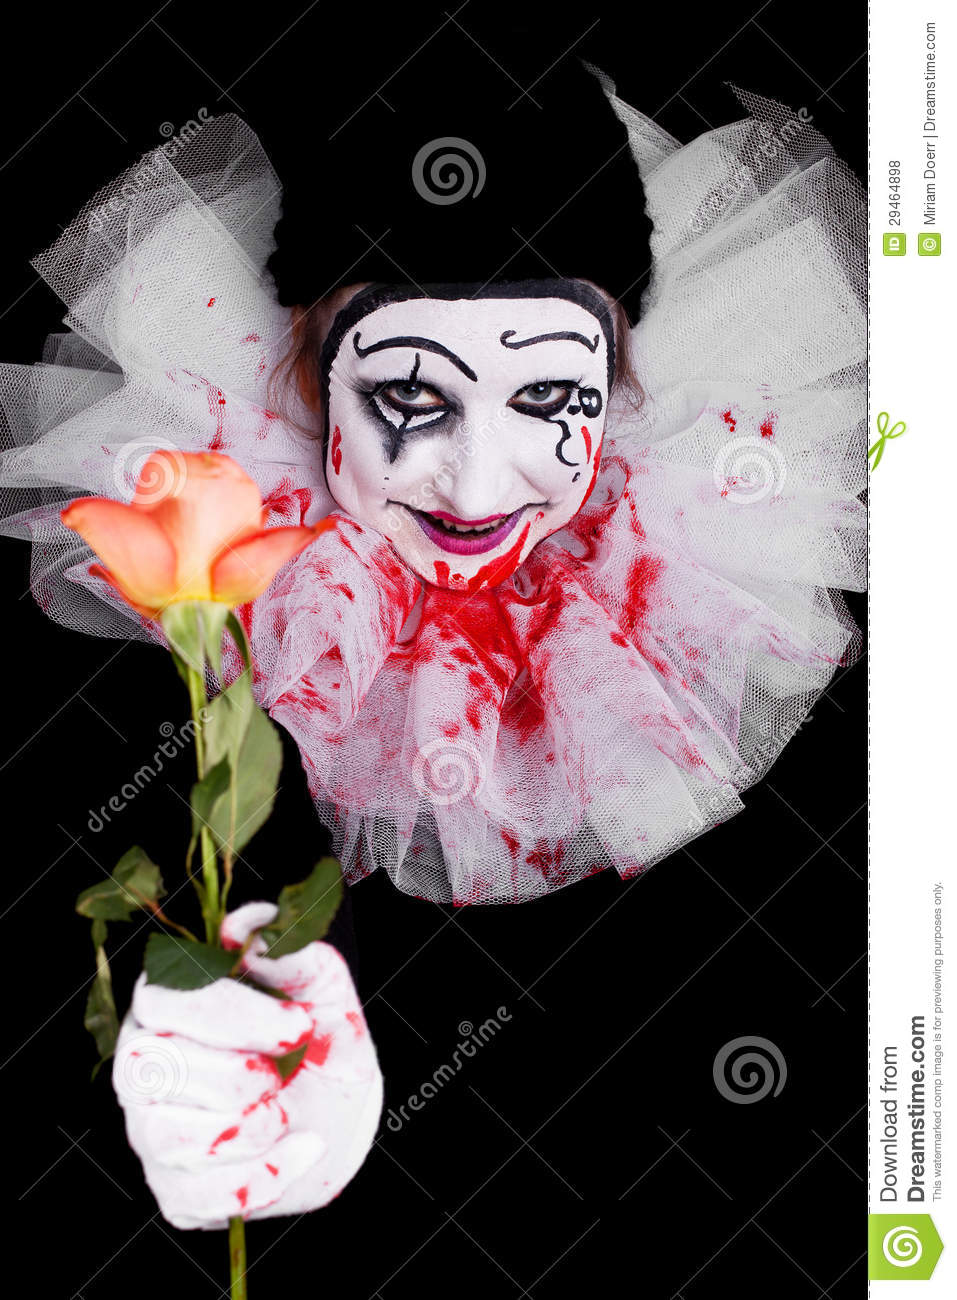 Creepy clown gives viewers a rose